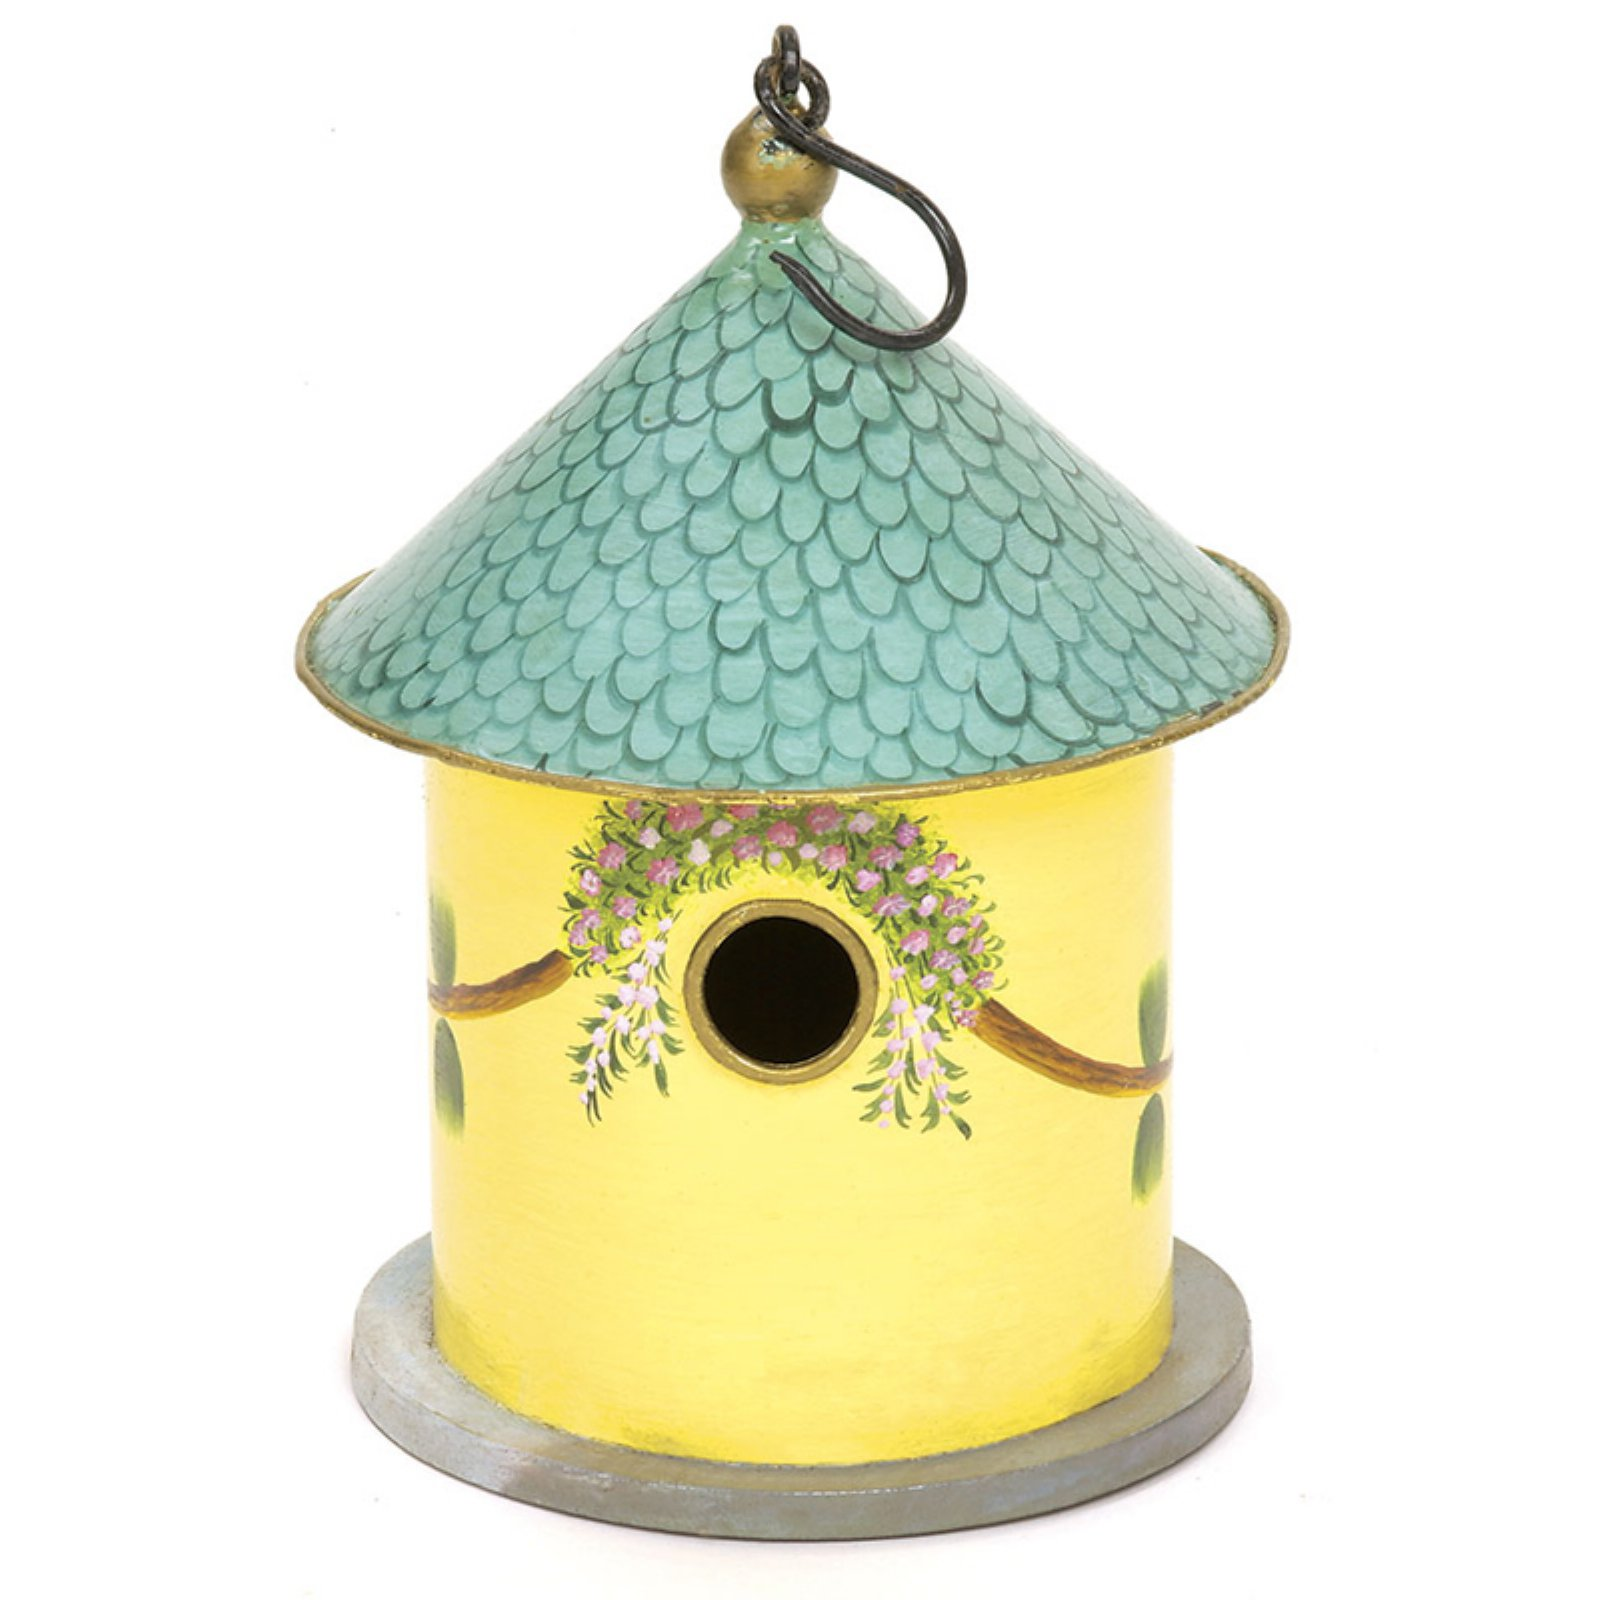 Achla Designs Bastion Handpainted Decorative Birdhouse by Bird Houses